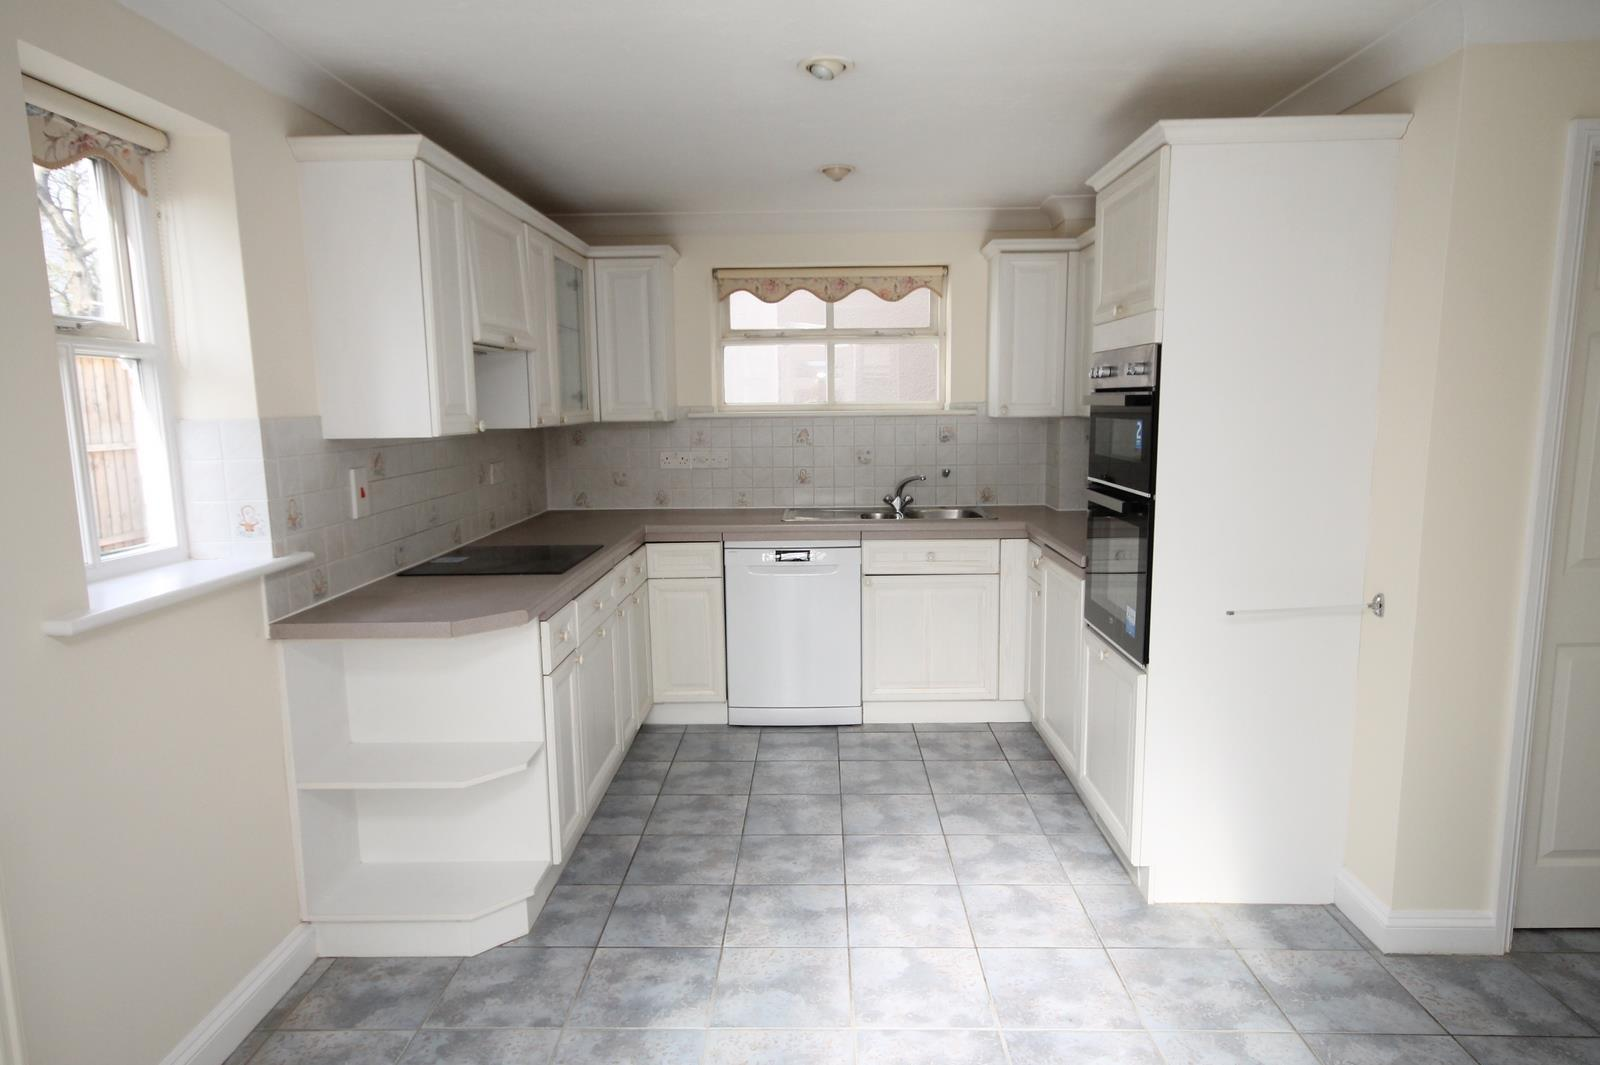 4 bed house to rent in Reedley Road, Bristol 3